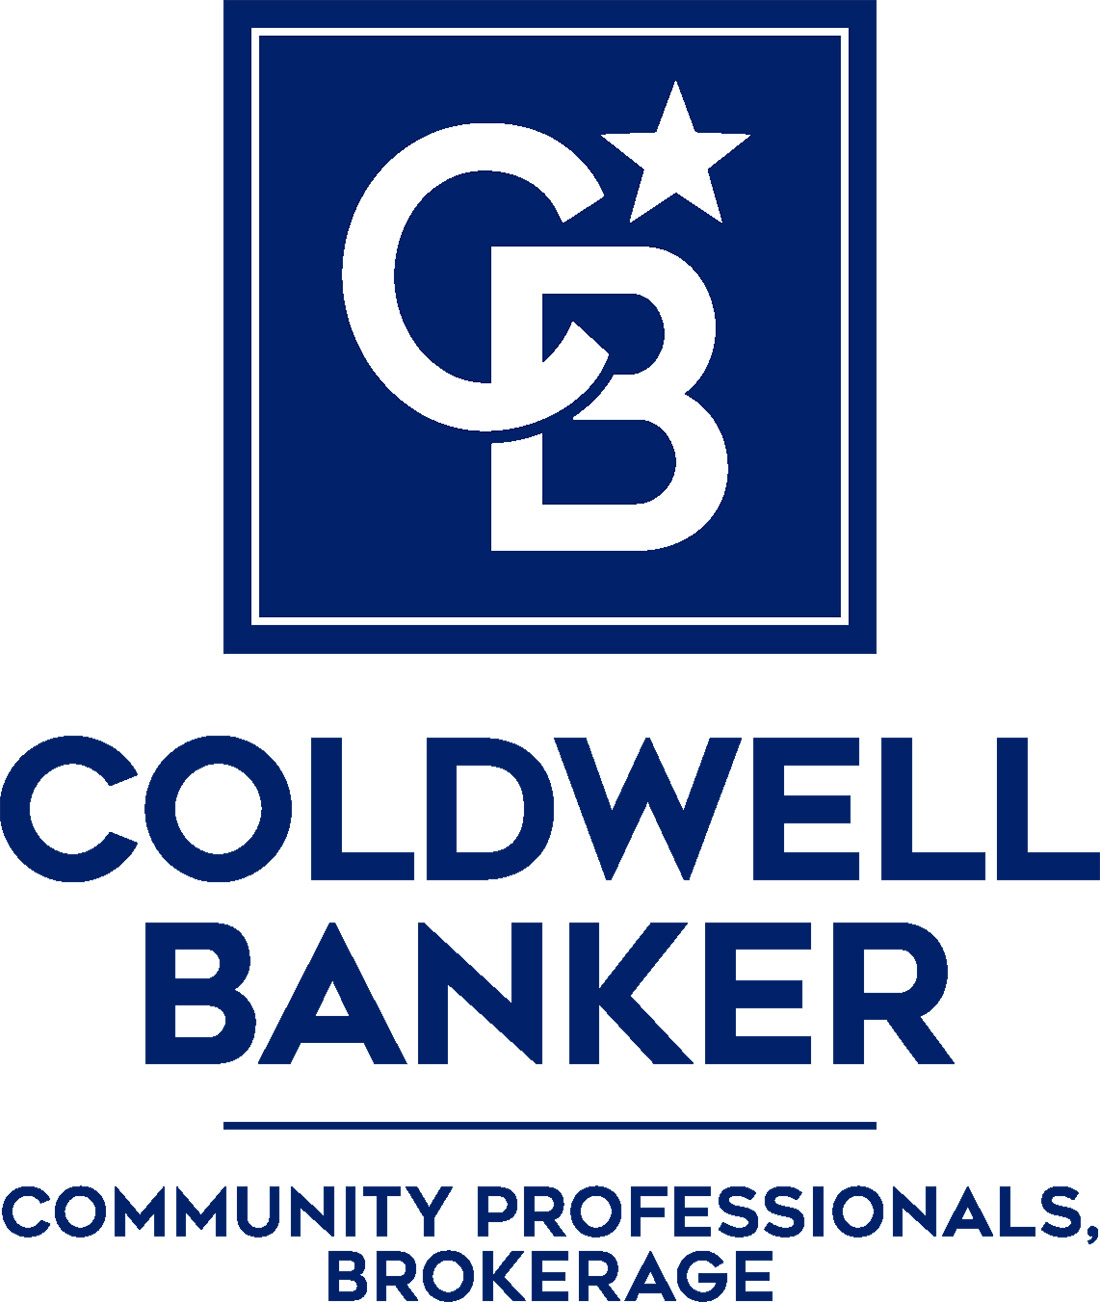 Val Dalgetty-Rigthon - Coldwell Banker Community Professionals Logo